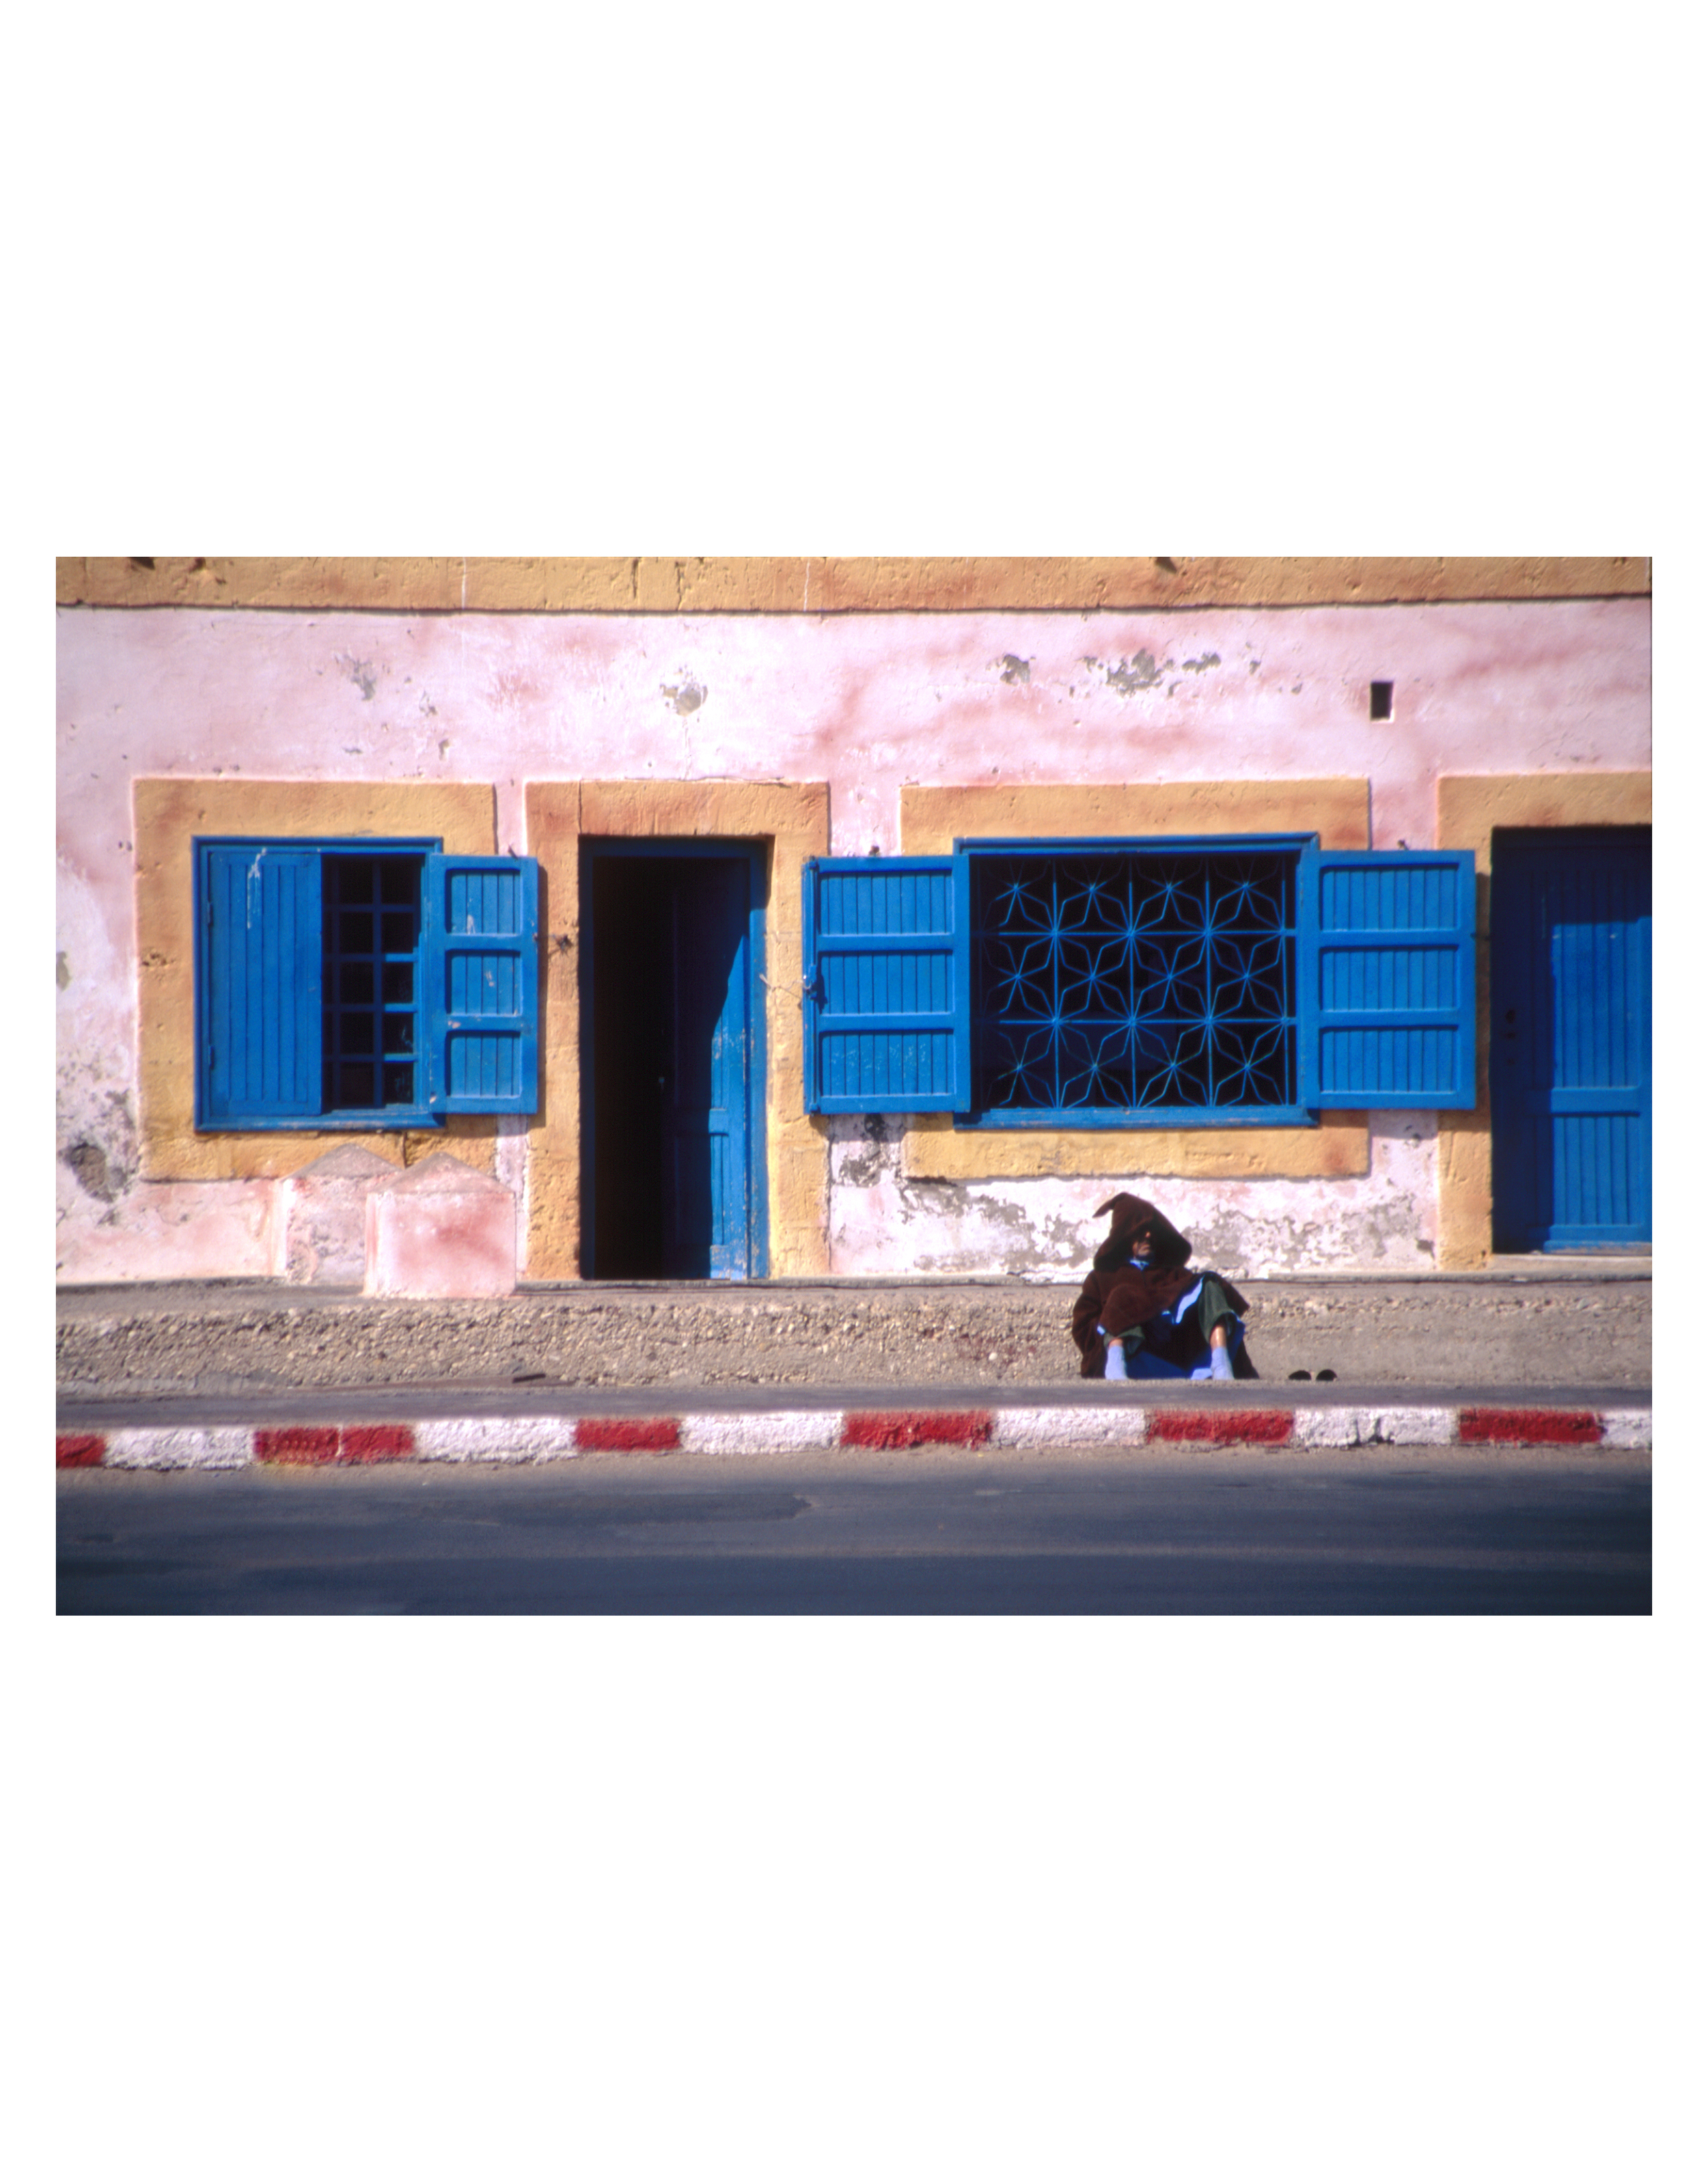 moroccan man on street.jpg